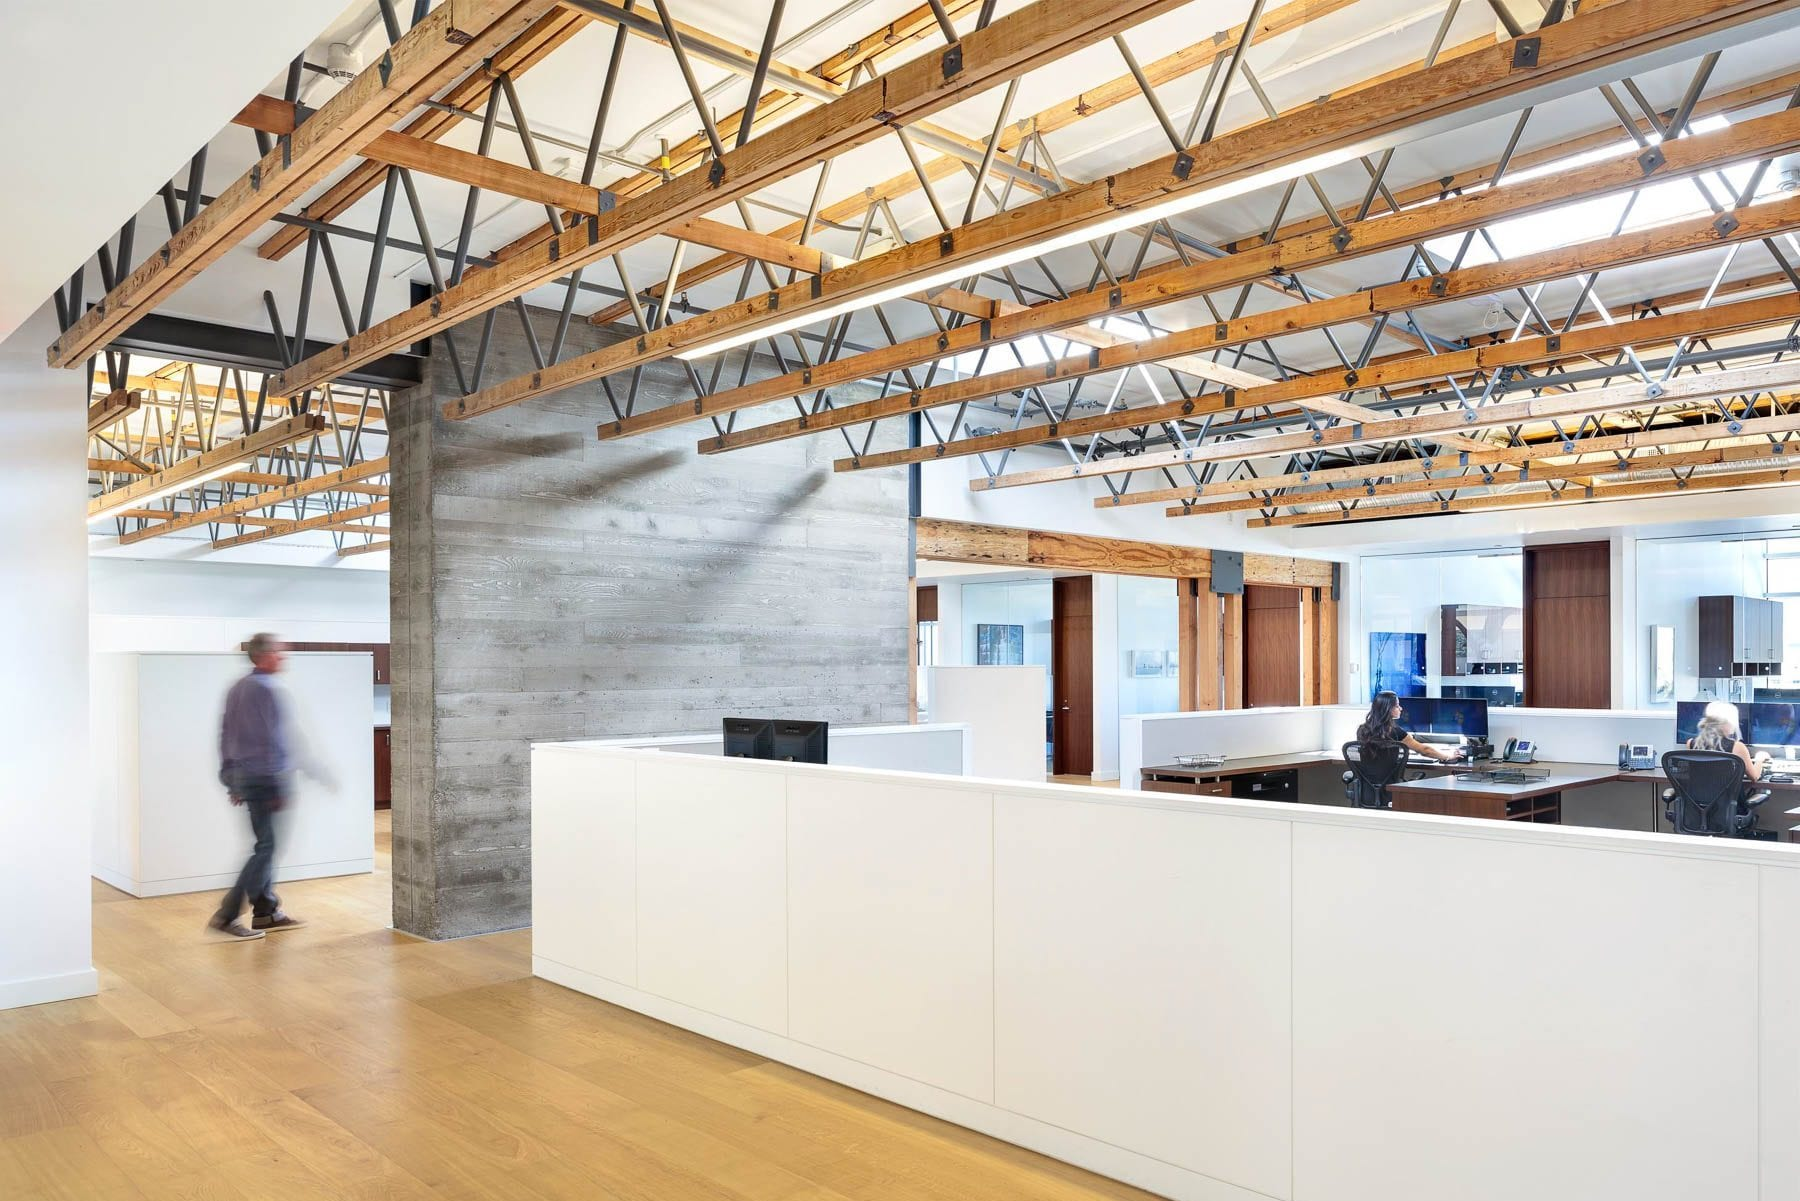 Corporate interior construction for Austeville properties' head office. Heavy timber structure adds unique character.